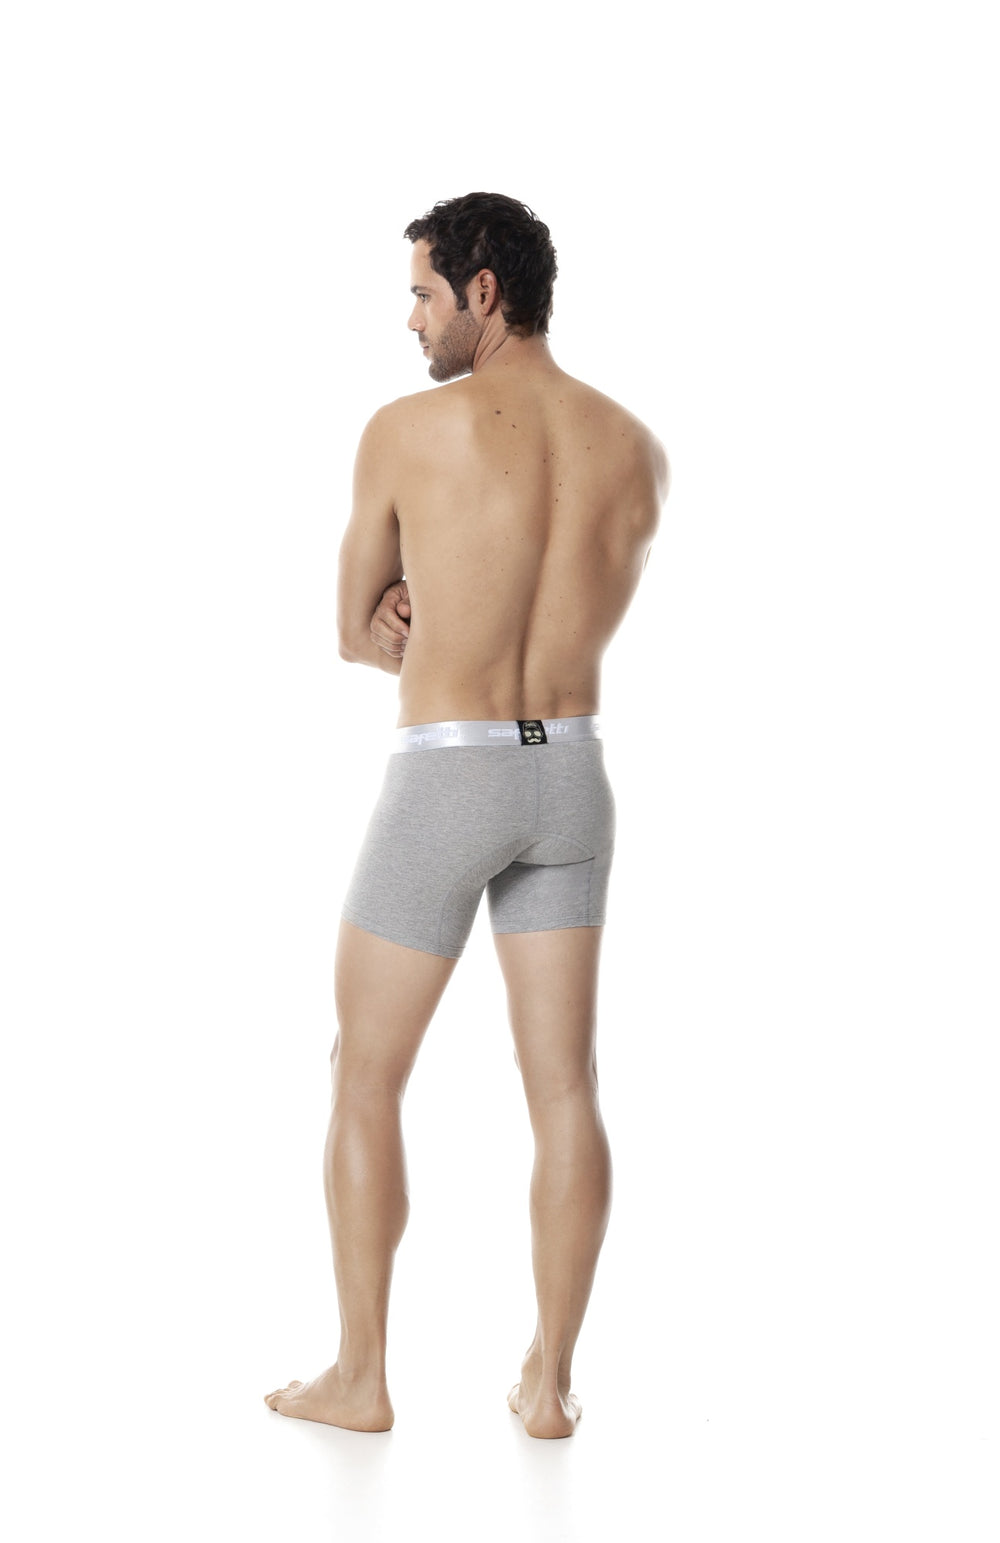 Trascendenza - Tour de France jaspe - Cotton boxer